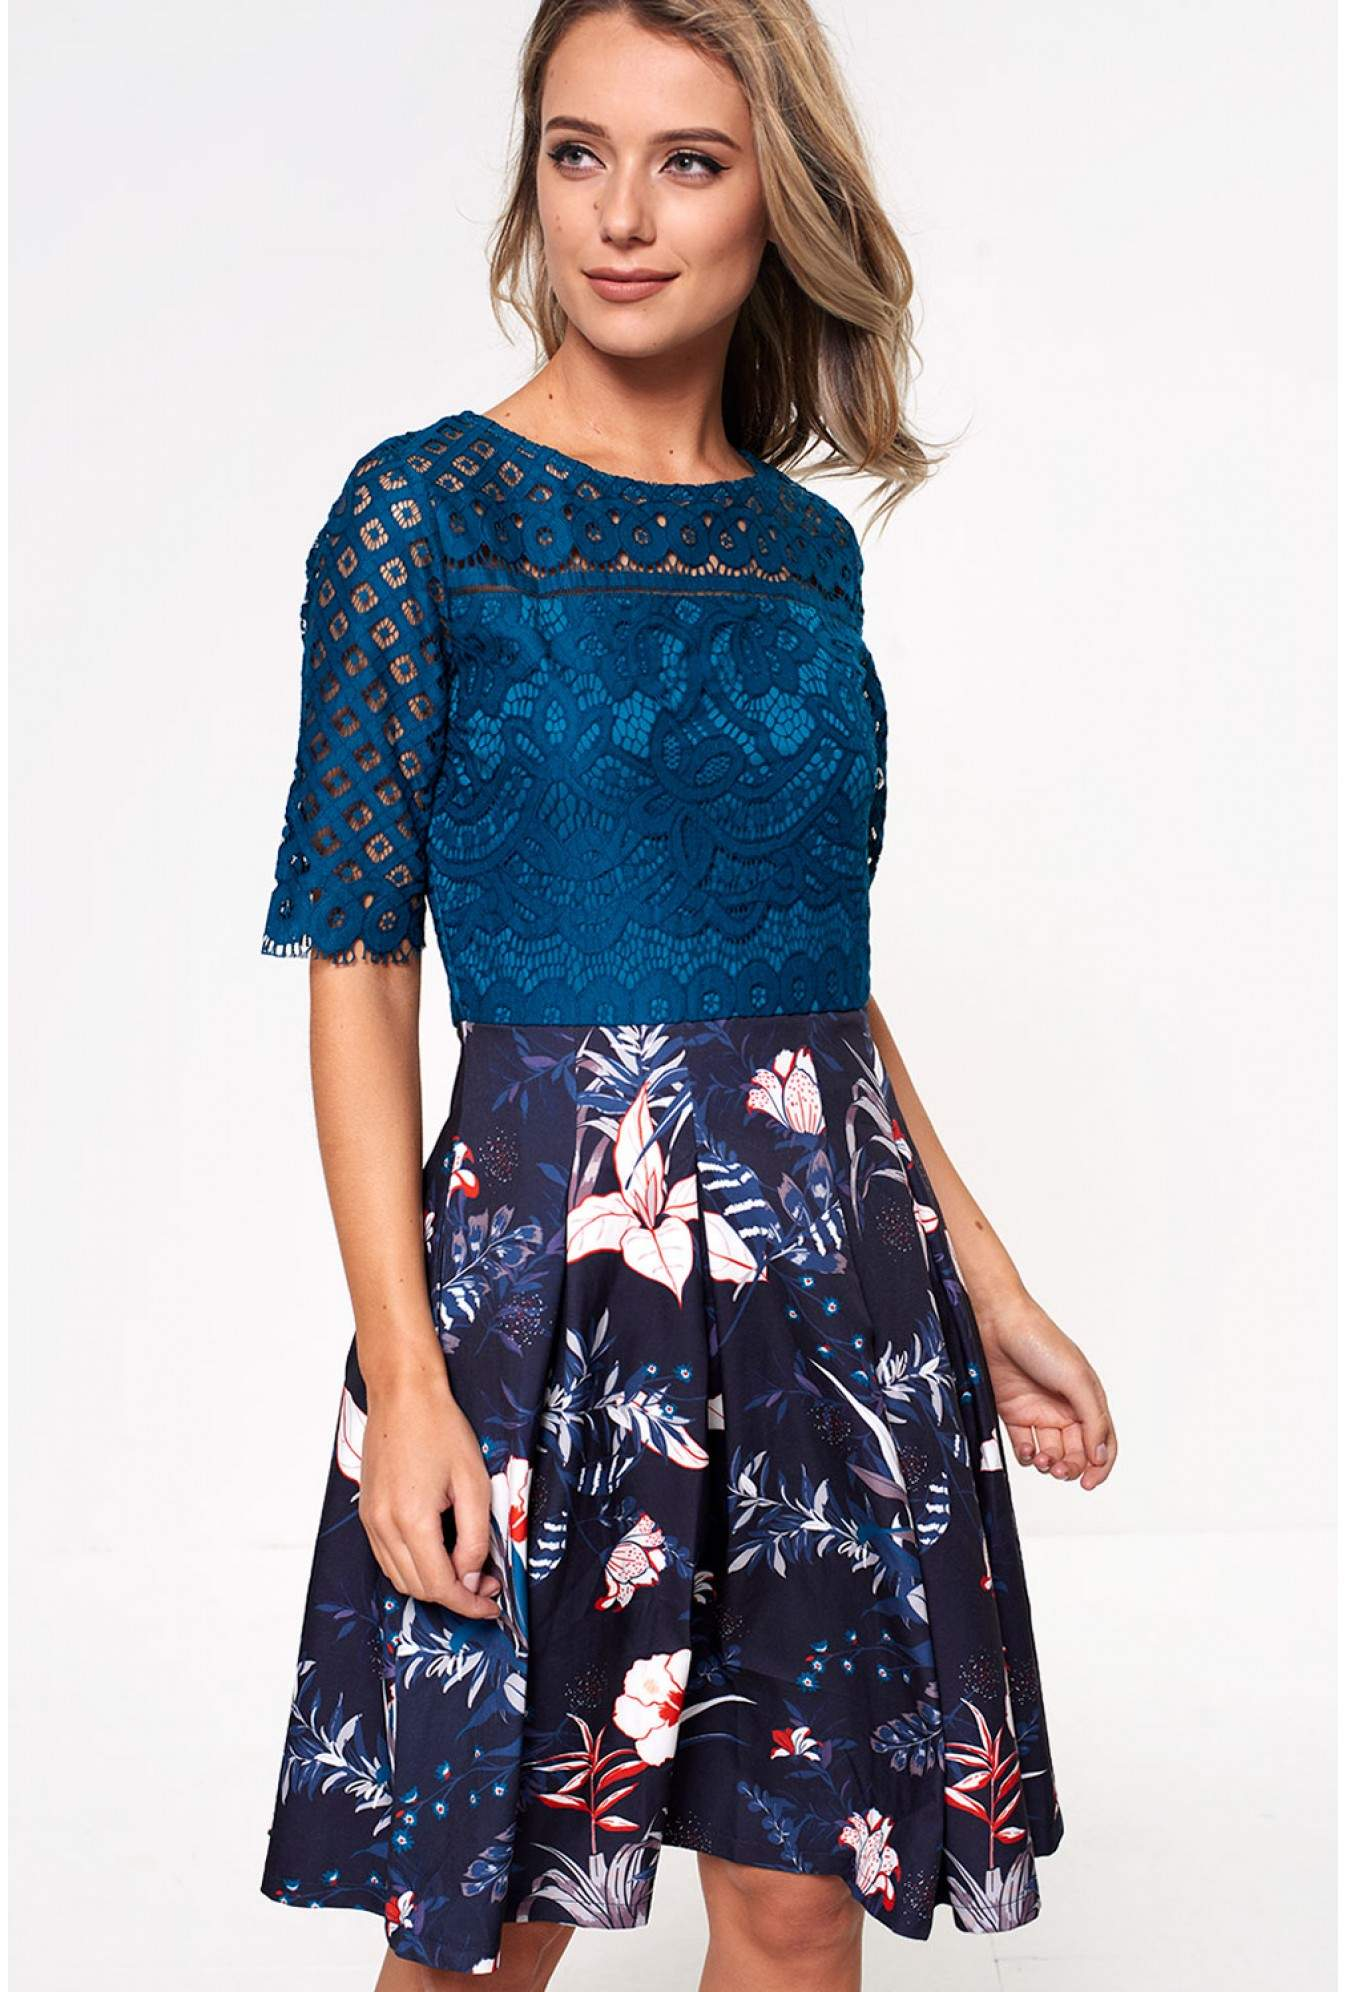 d4ca8b51b9bb Marc Angelo Trish Lace Top Skater Dress in Teal